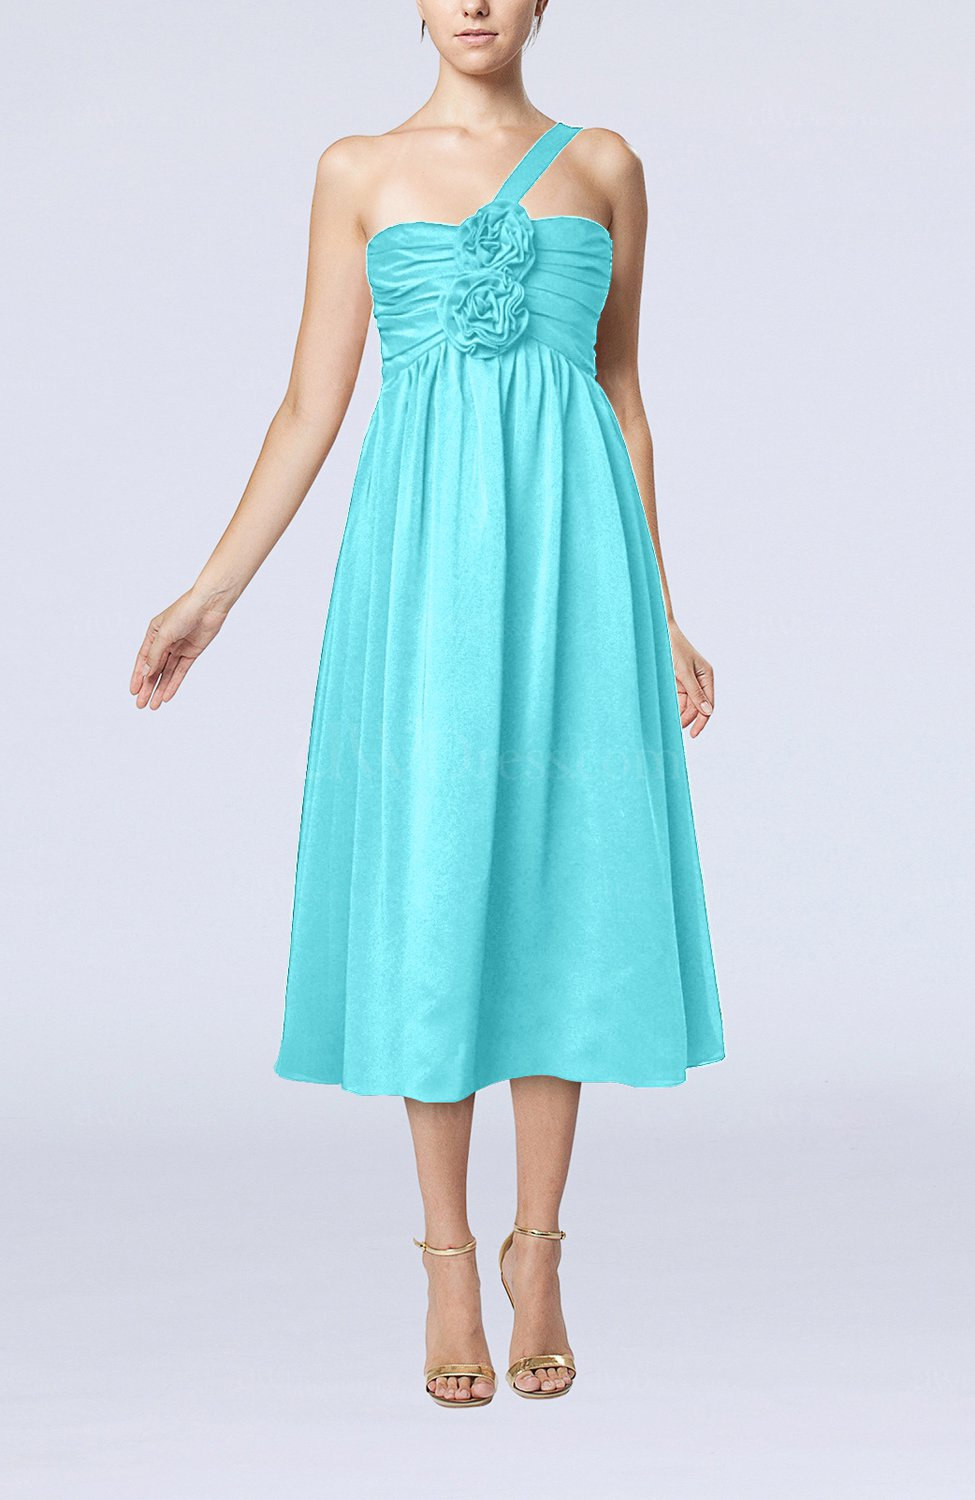 Turquoise casual one shoulder sleeveless chiffon pleated for Turquoise wedding guest dress